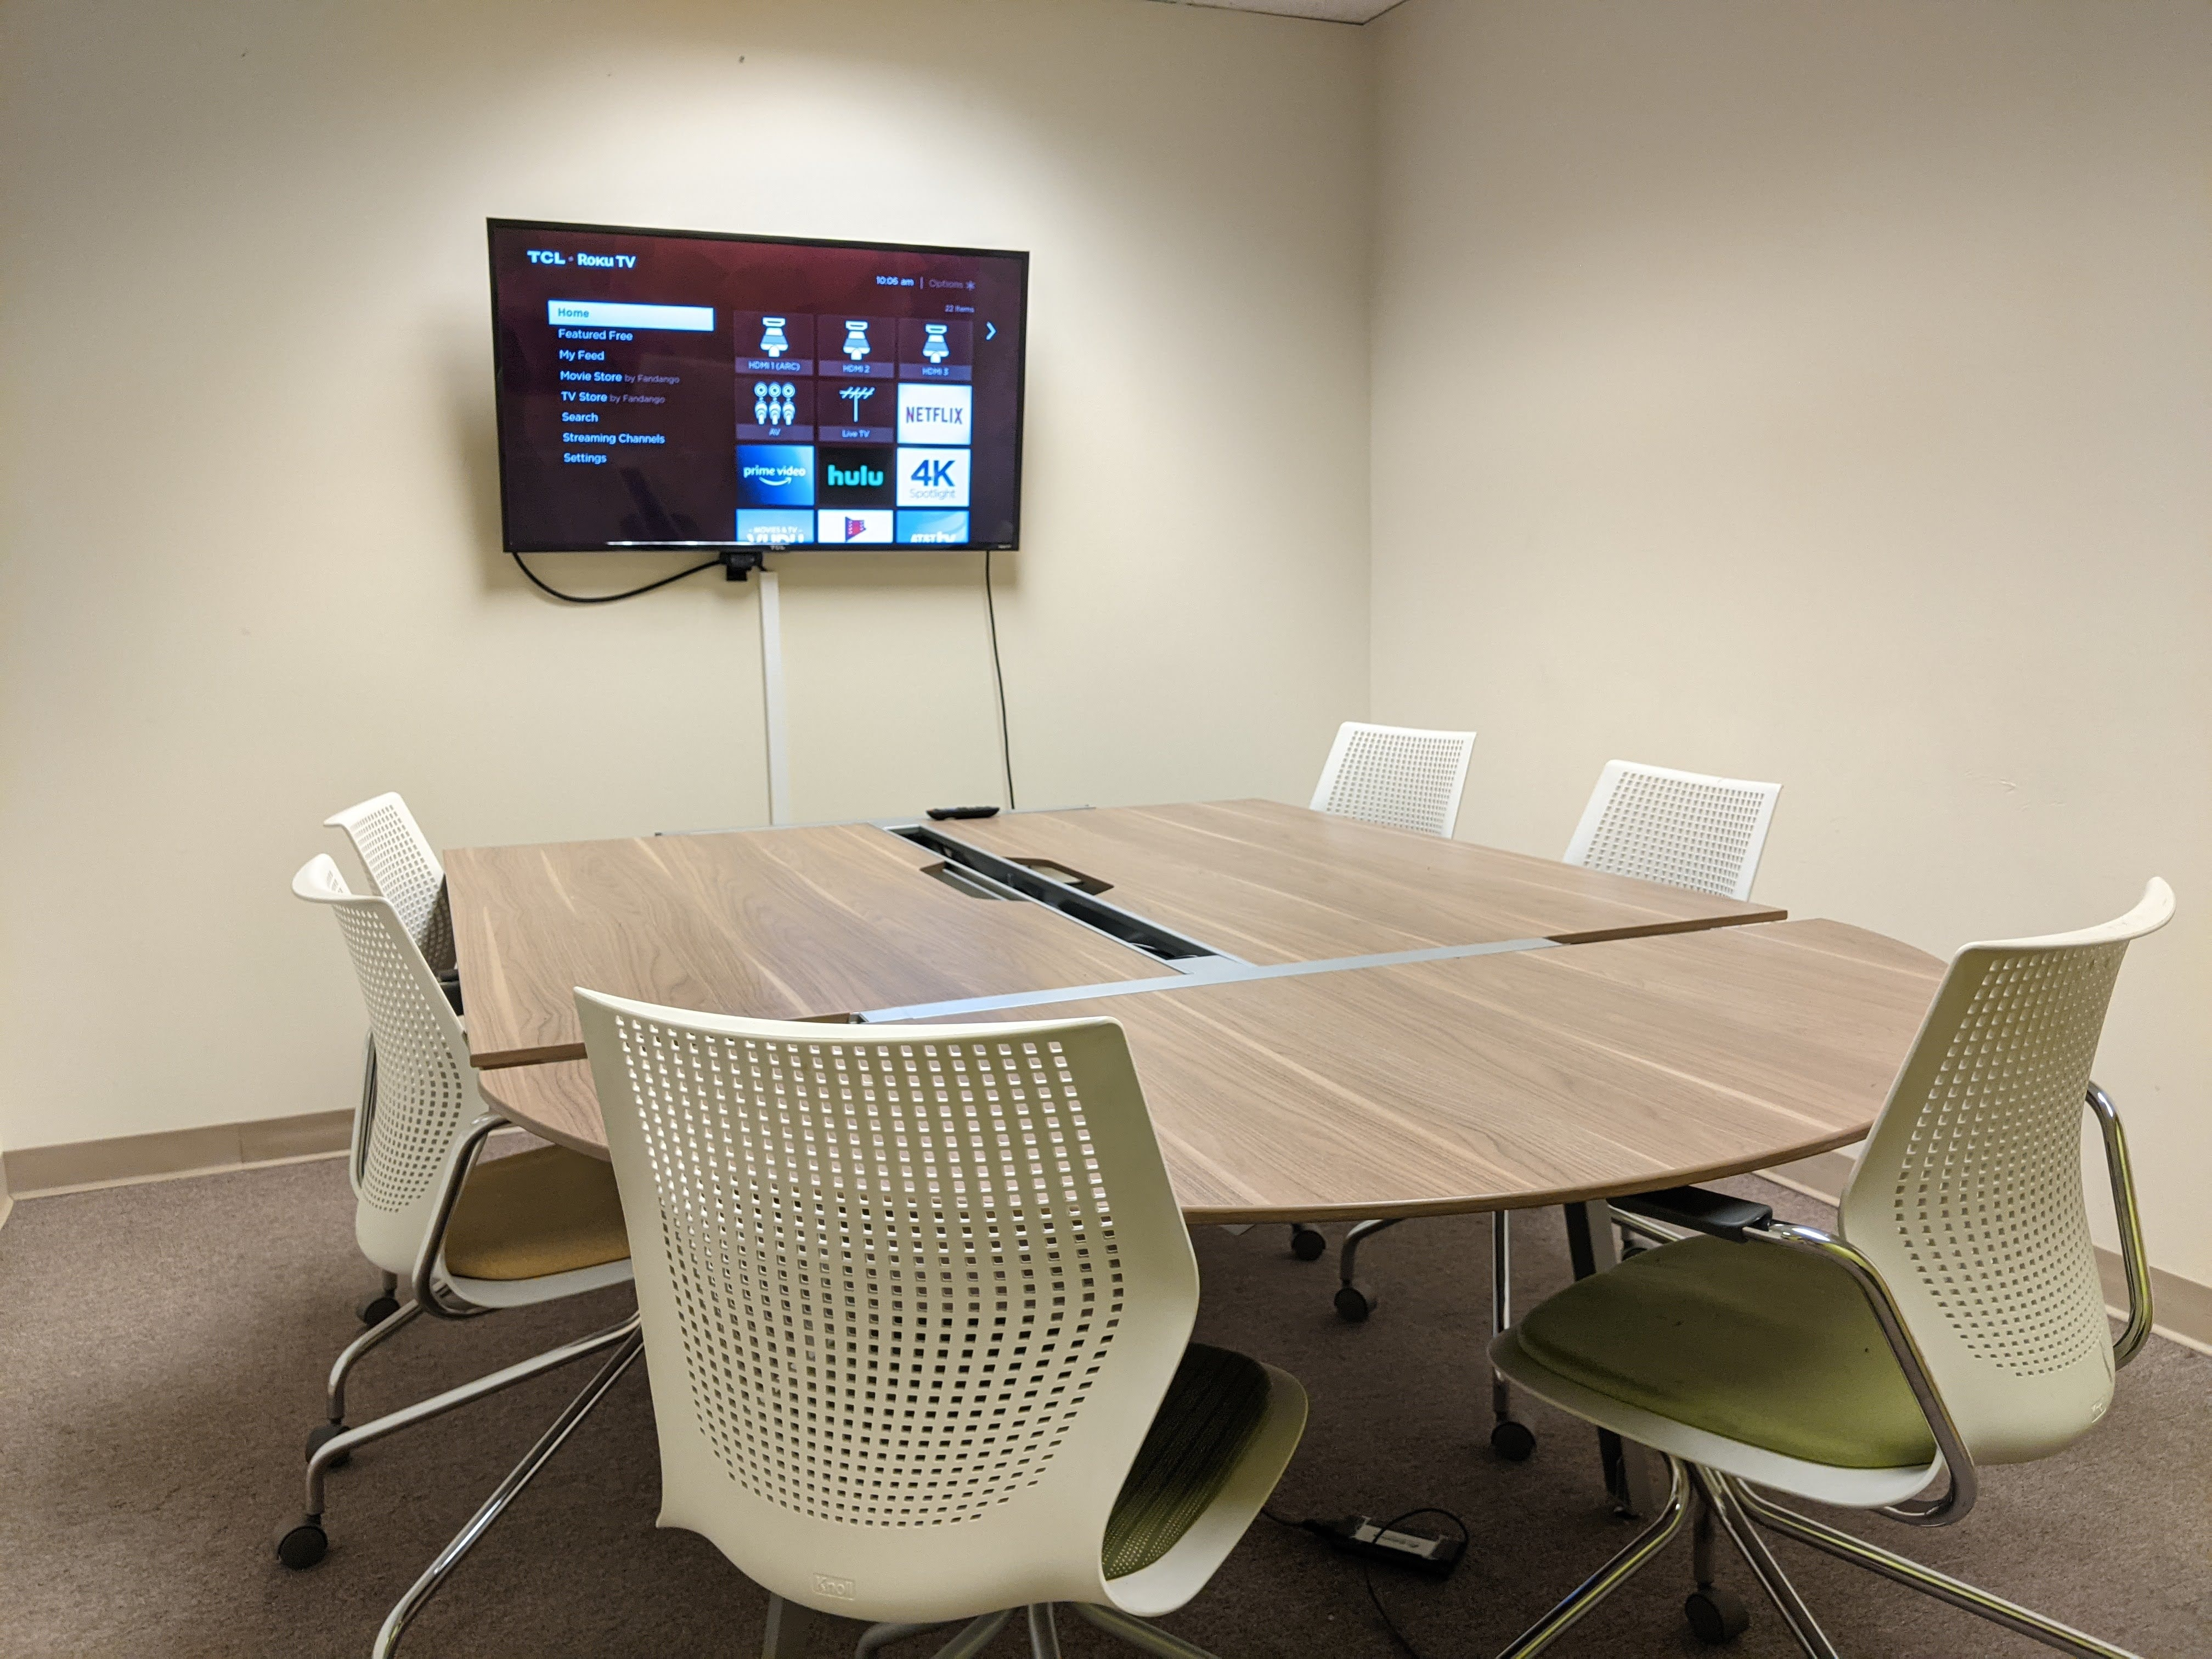 Conference room with TV and a whiteboard